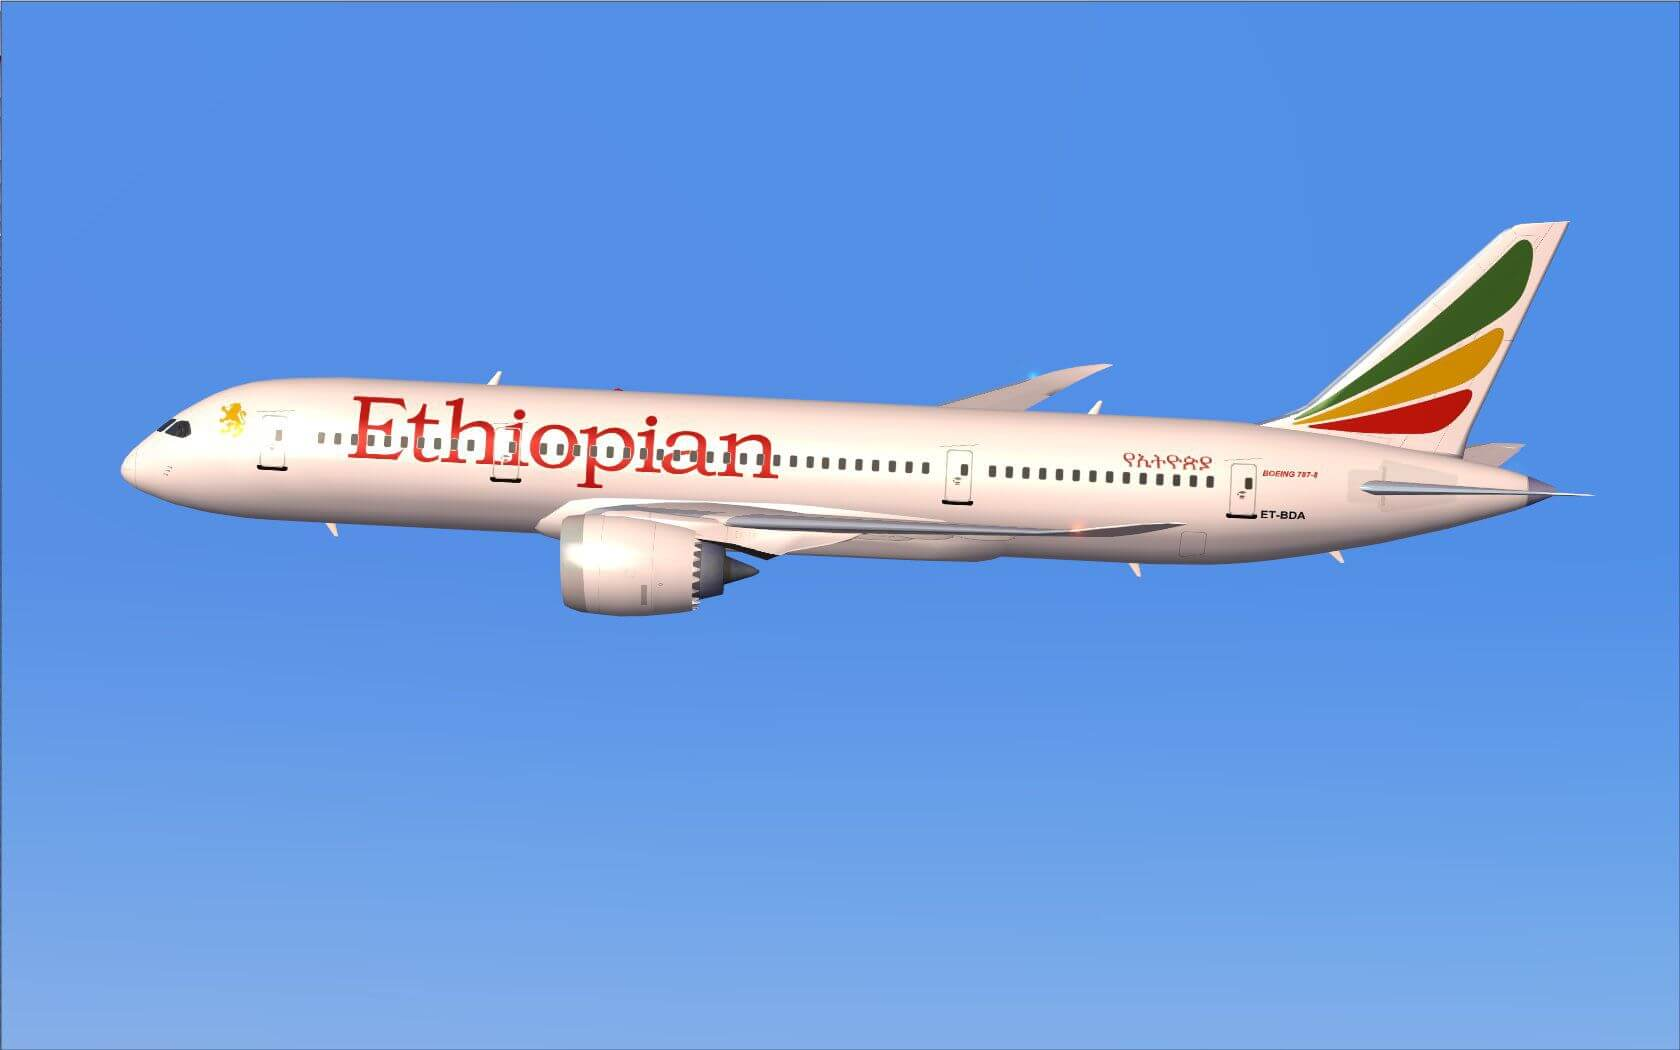 Ethiopian_Travel_Agency in silver spring md